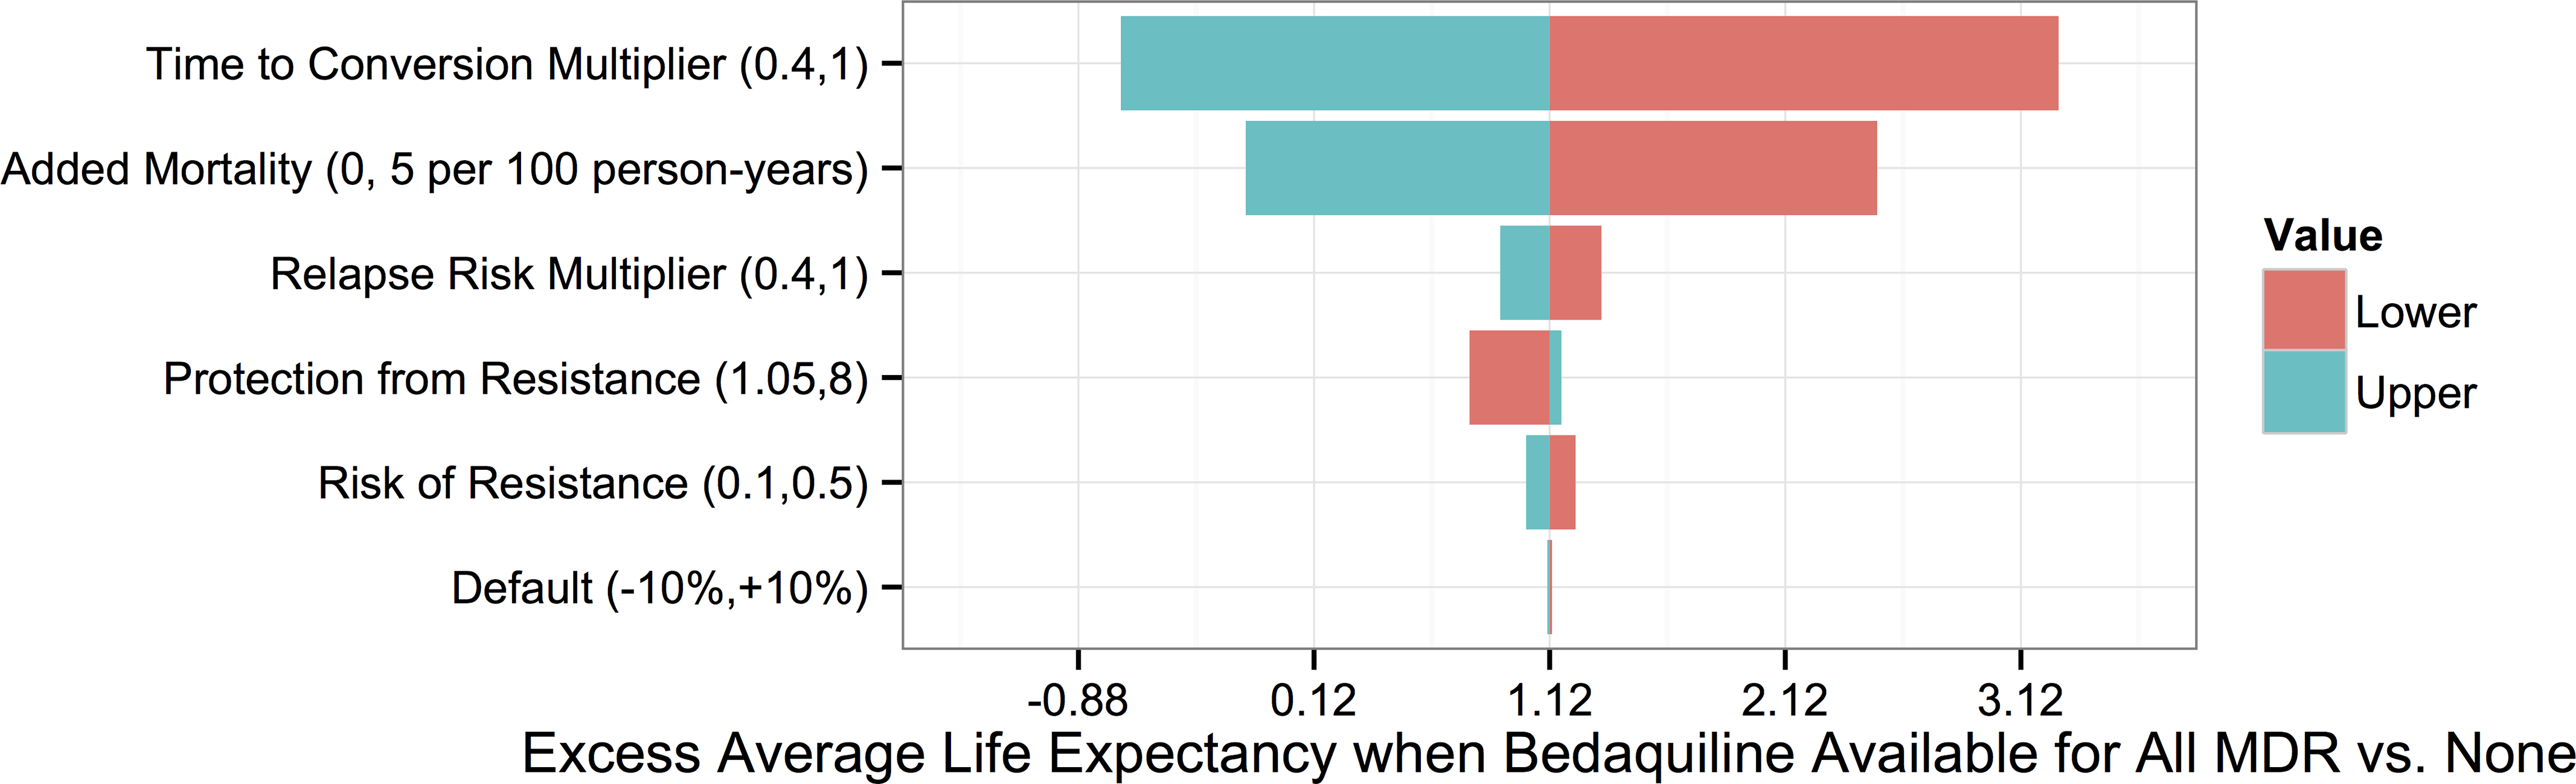 Tornado plot displaying how the potential improvement in average life expectancy that would result from use of bedaquiline for all patients with MDR TB versus no patients depends on the values of particular parameters.